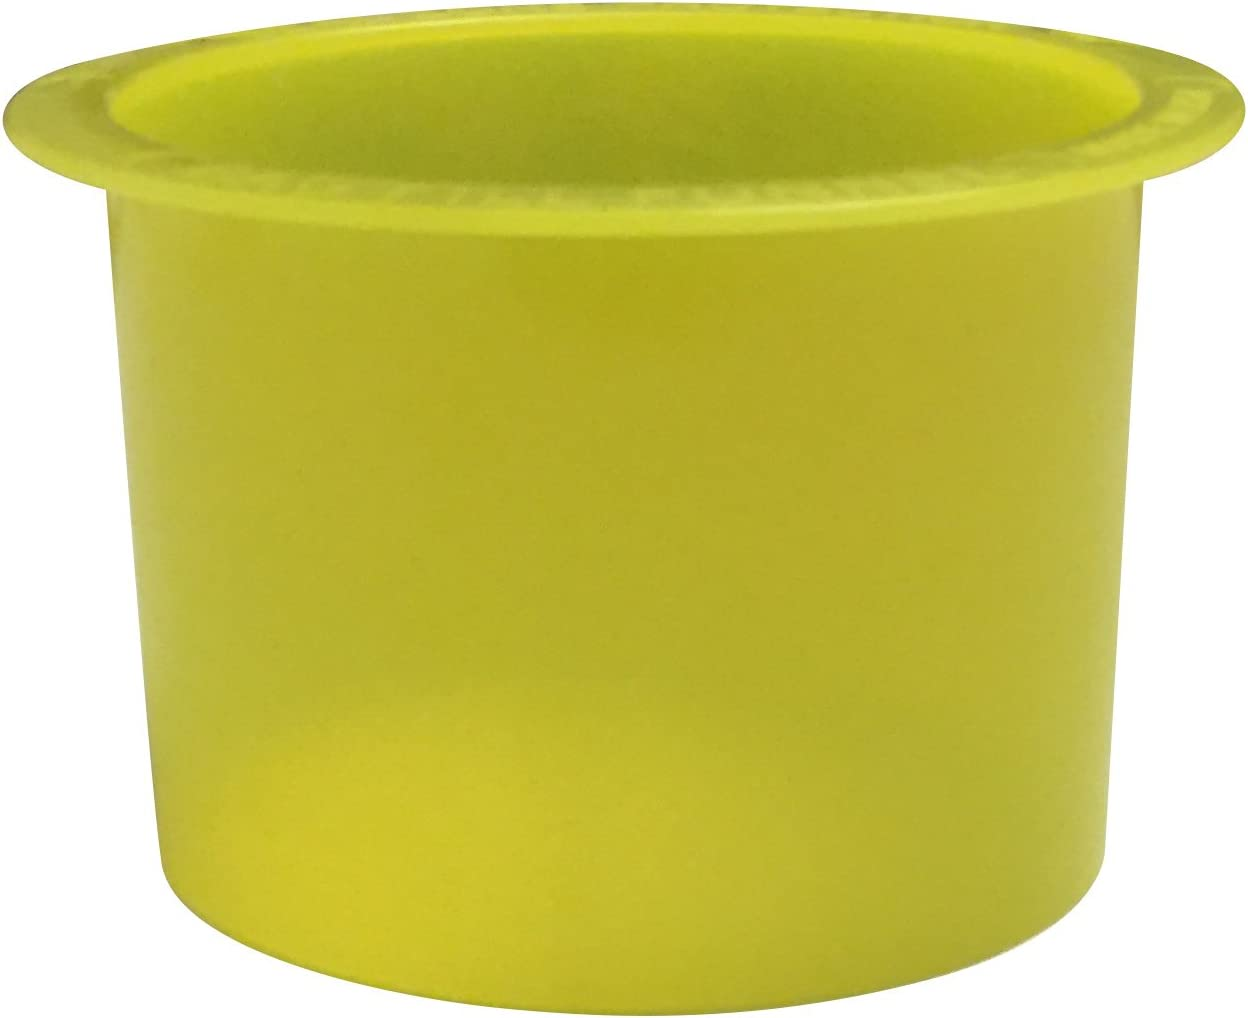 Bag Fill Funnel, 2 pack (yellow)